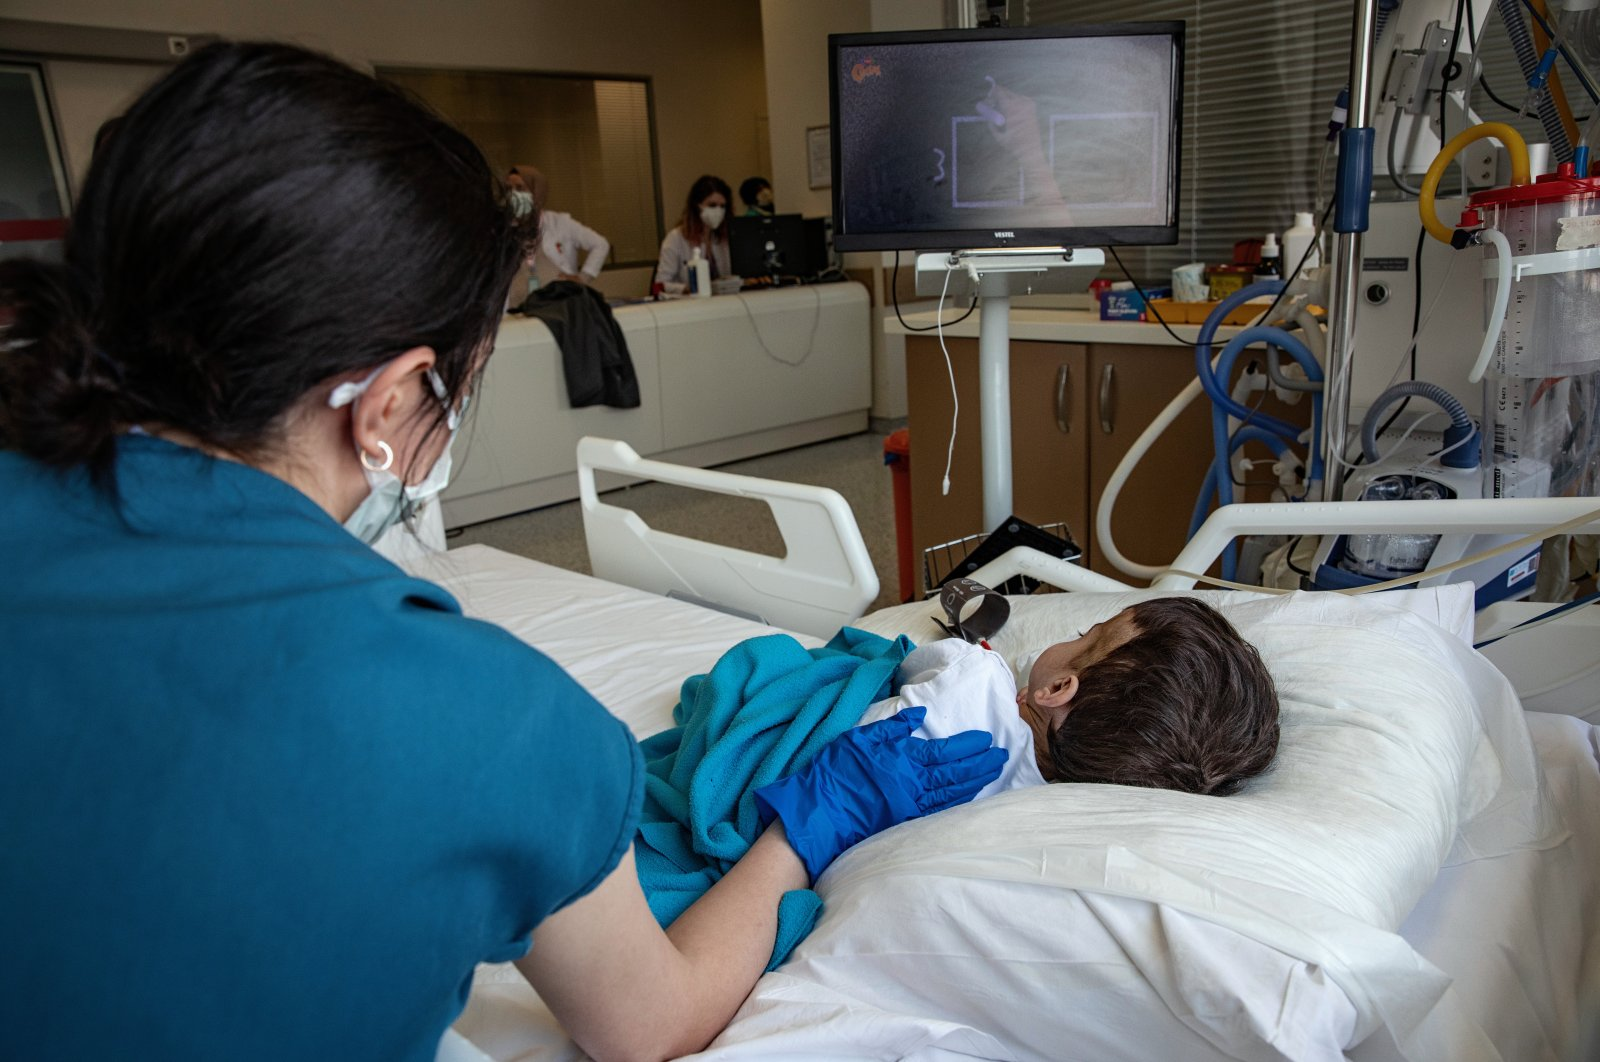 A nurse cares for a young patient watching TV at the hospital, in Istanbul, Turkey, April 16, 2021. (AA PHOTO)